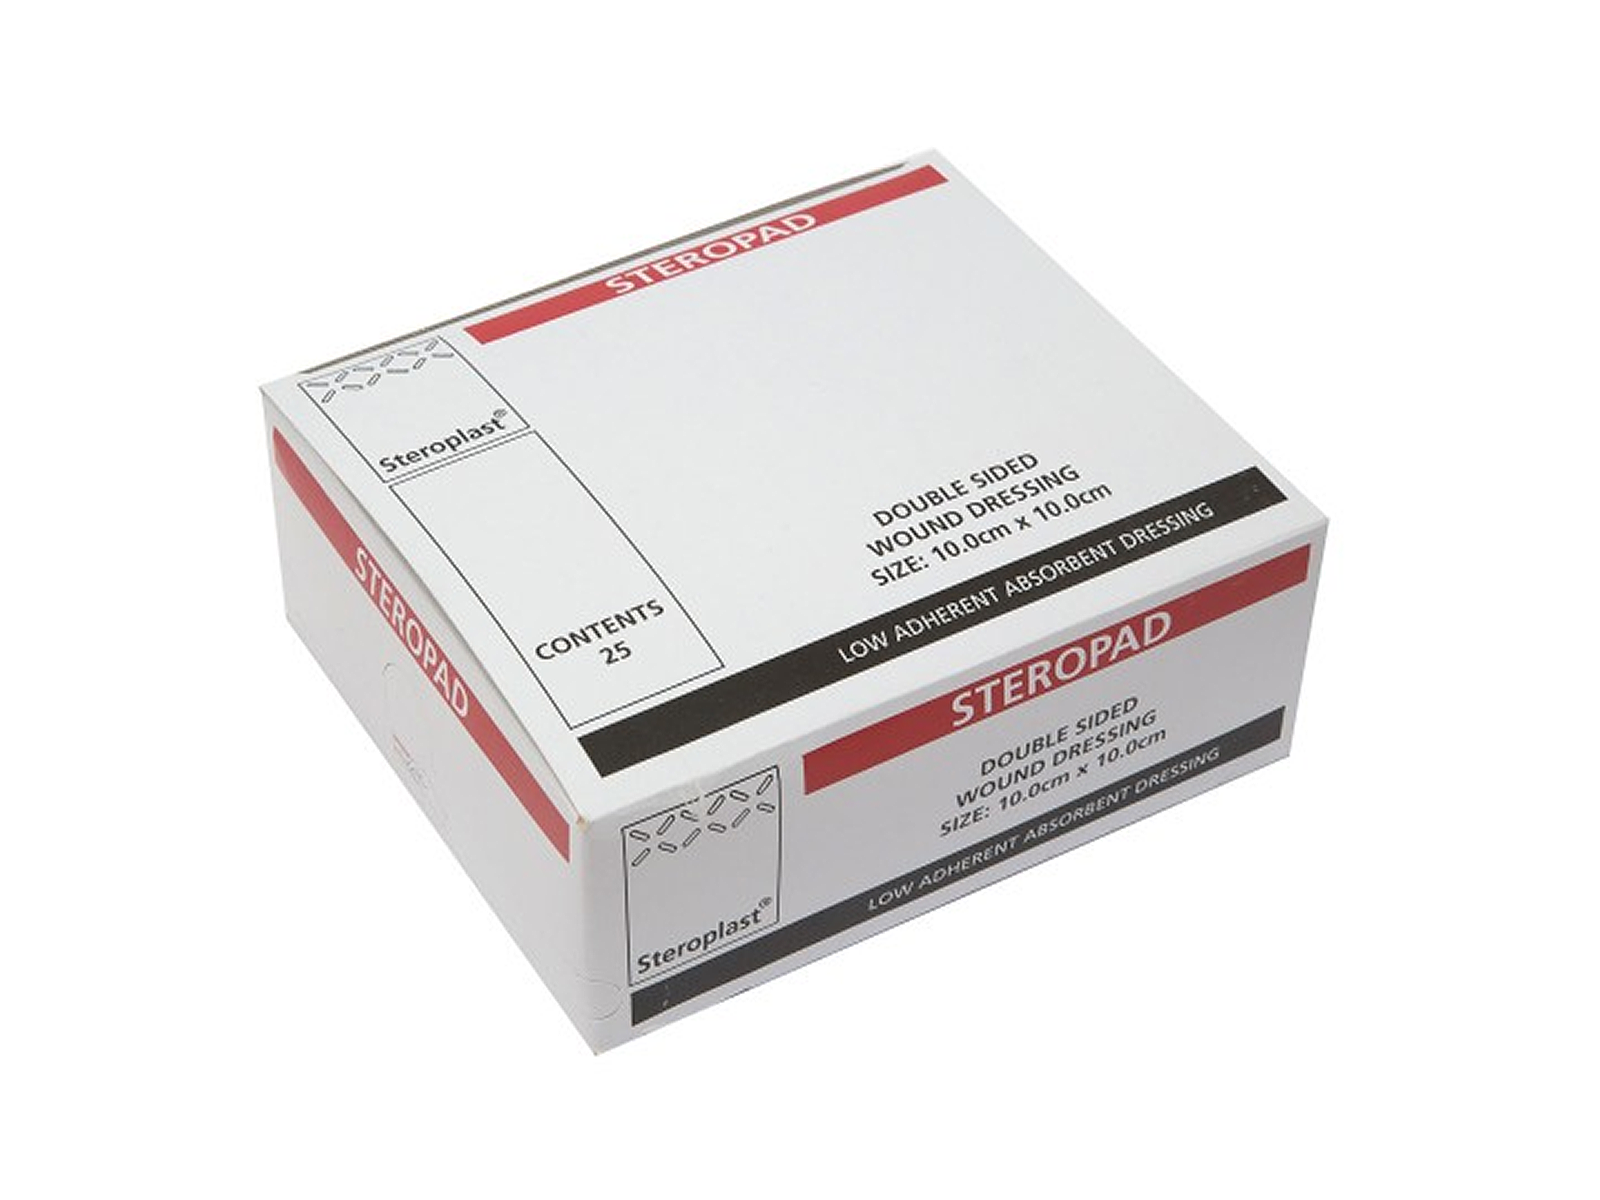 Steropad Double-sided Absorbent Wound Dressing 10cm x 10cm